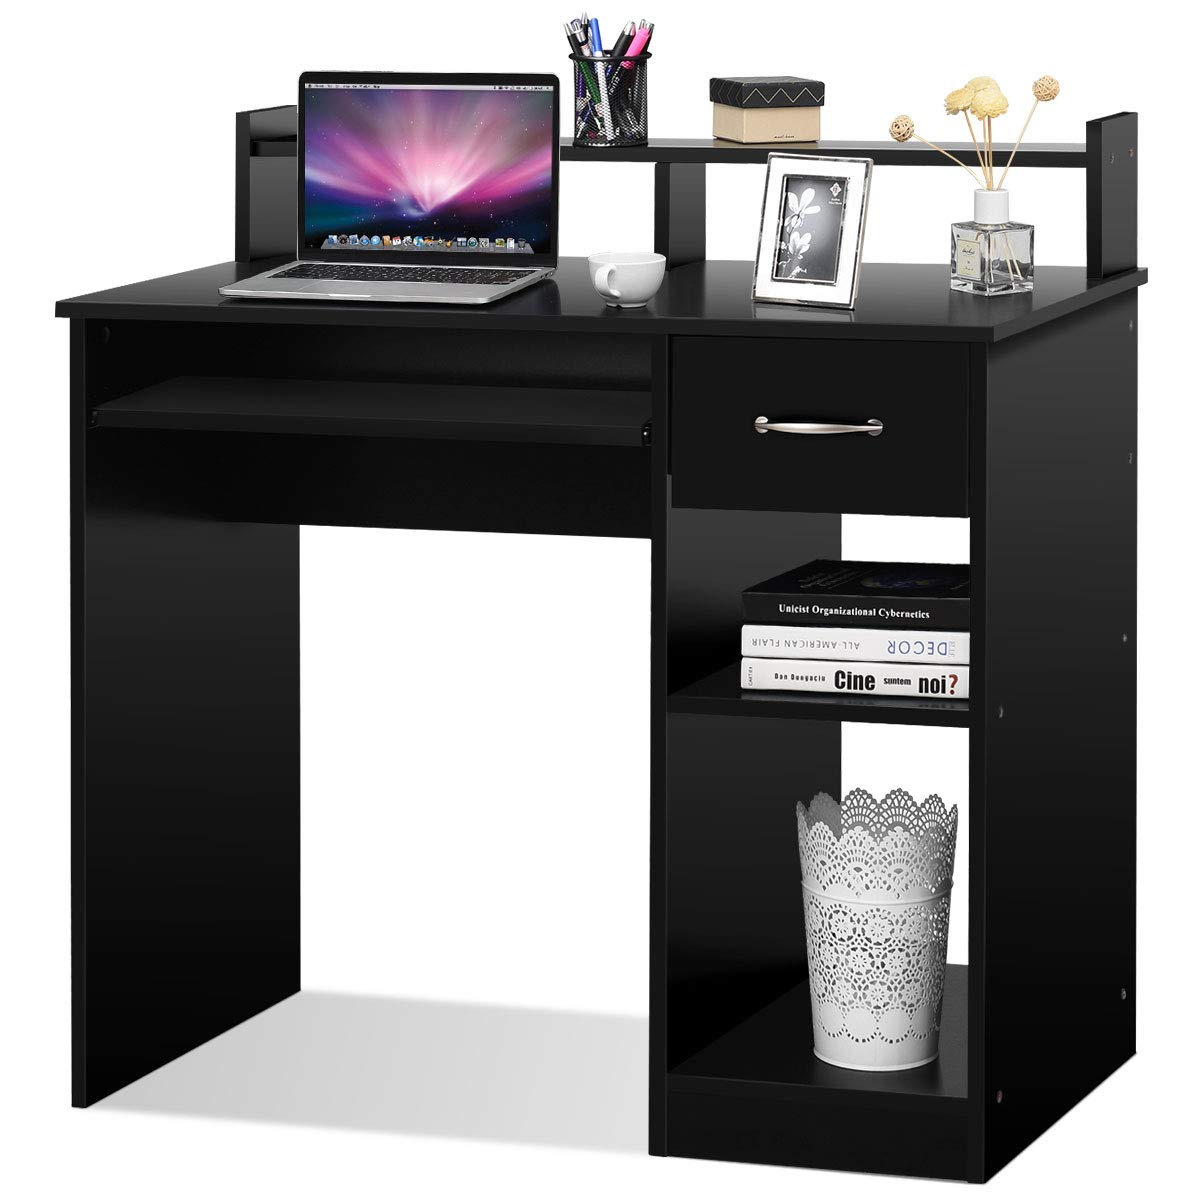 Tangkula Computer Desk, Home Office Wooden PC Laptop Desk, Modern Simple Style Wood Study Workstation, Writing Table with Storage Drawer & Shelves, Wooden Furniture (Black) by Tangkula